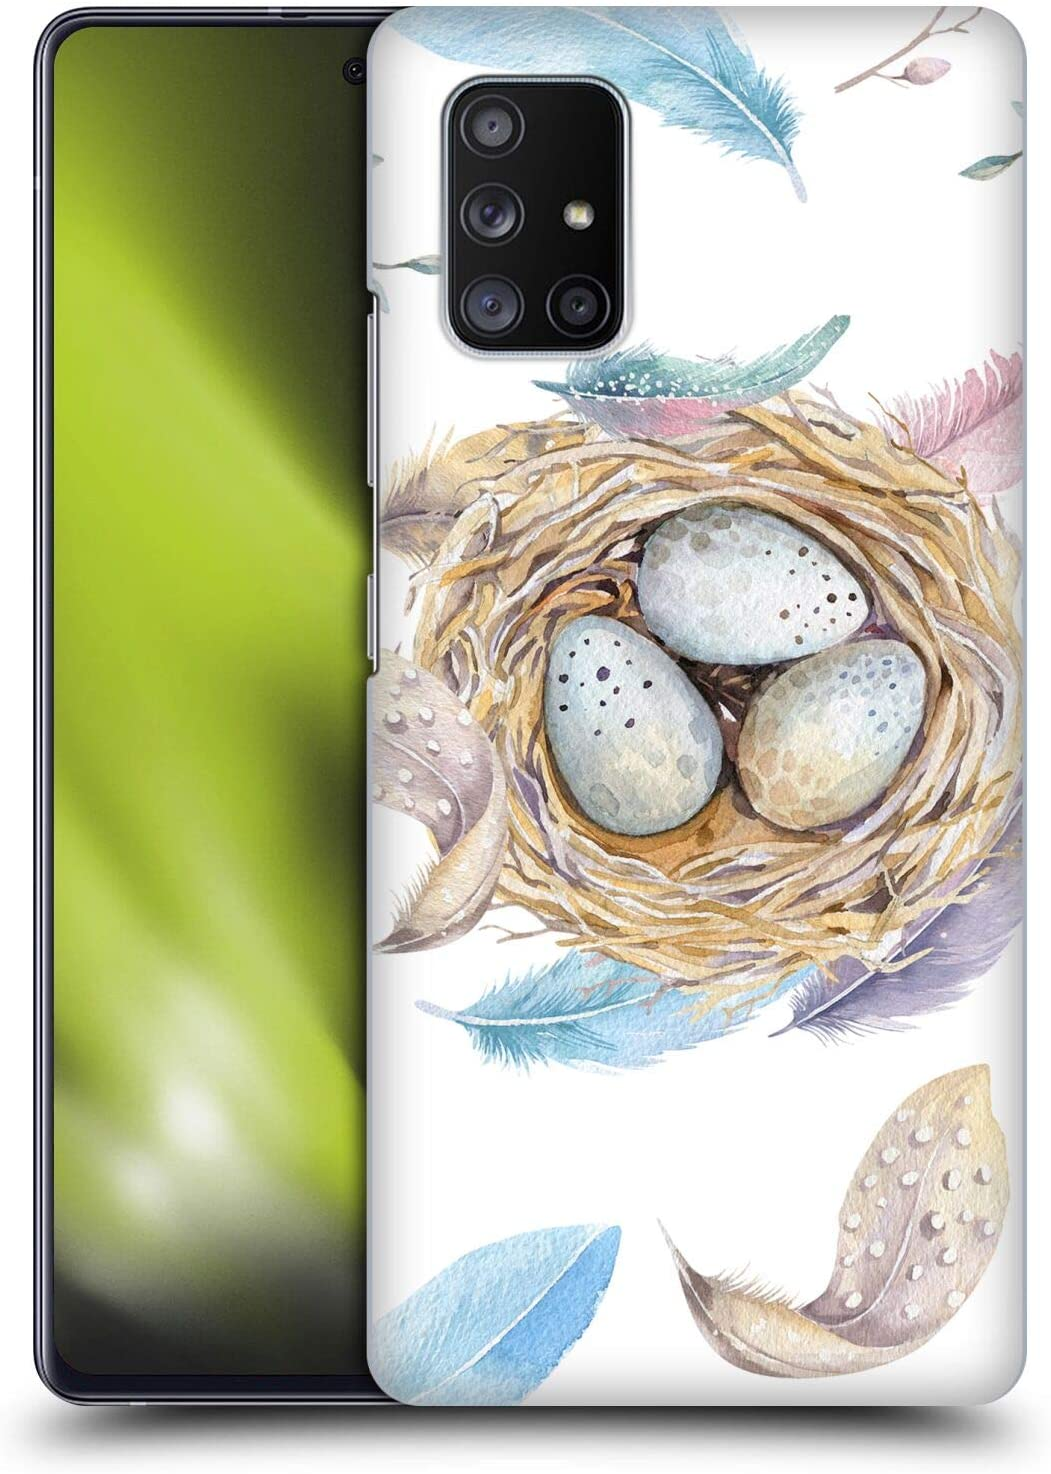 Head Case Designs Officially Licensed Kristina Kvilis Nest Birds Hard Back Case Compatible with Samsung Galaxy A51 5G (2020)